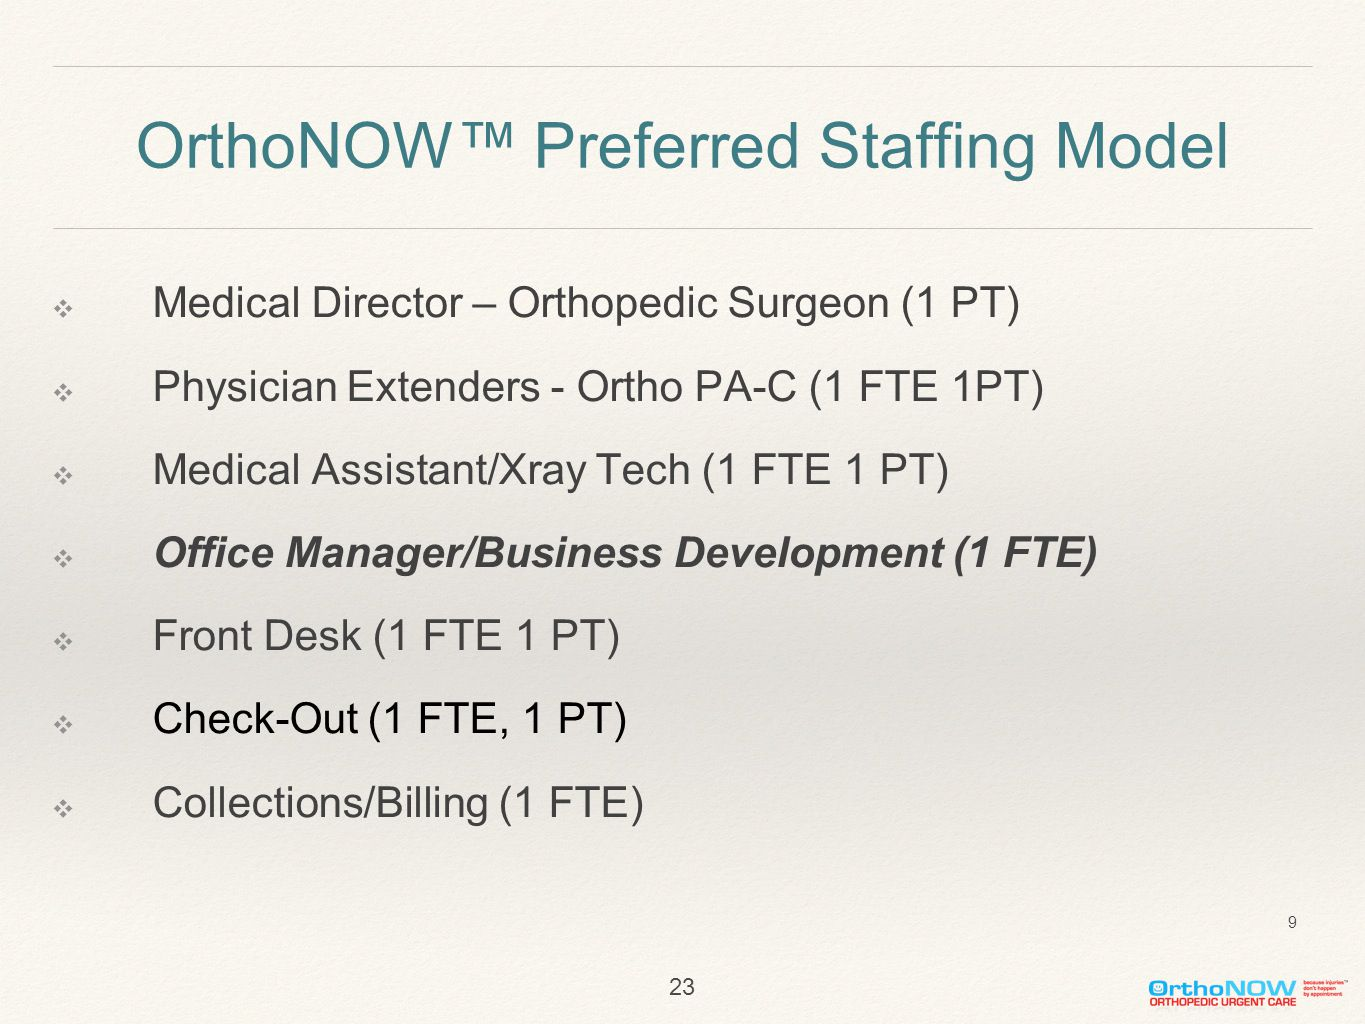 OrthoNOW™ Preferred Staffing Model ❖ Medical Director – Orthopedic Surgeon (1 PT) ❖ Physician Extenders - Ortho PA-C (1 FTE 1PT) ❖ Medical Assistant/Xray Tech (1 FTE 1 PT) ❖ Office Manager/Business Development (1 FTE) ❖ Front Desk (1 FTE 1 PT) ❖ Check-Out (1 FTE, 1 PT) ❖ Collections/Billing (1 FTE) 23 9